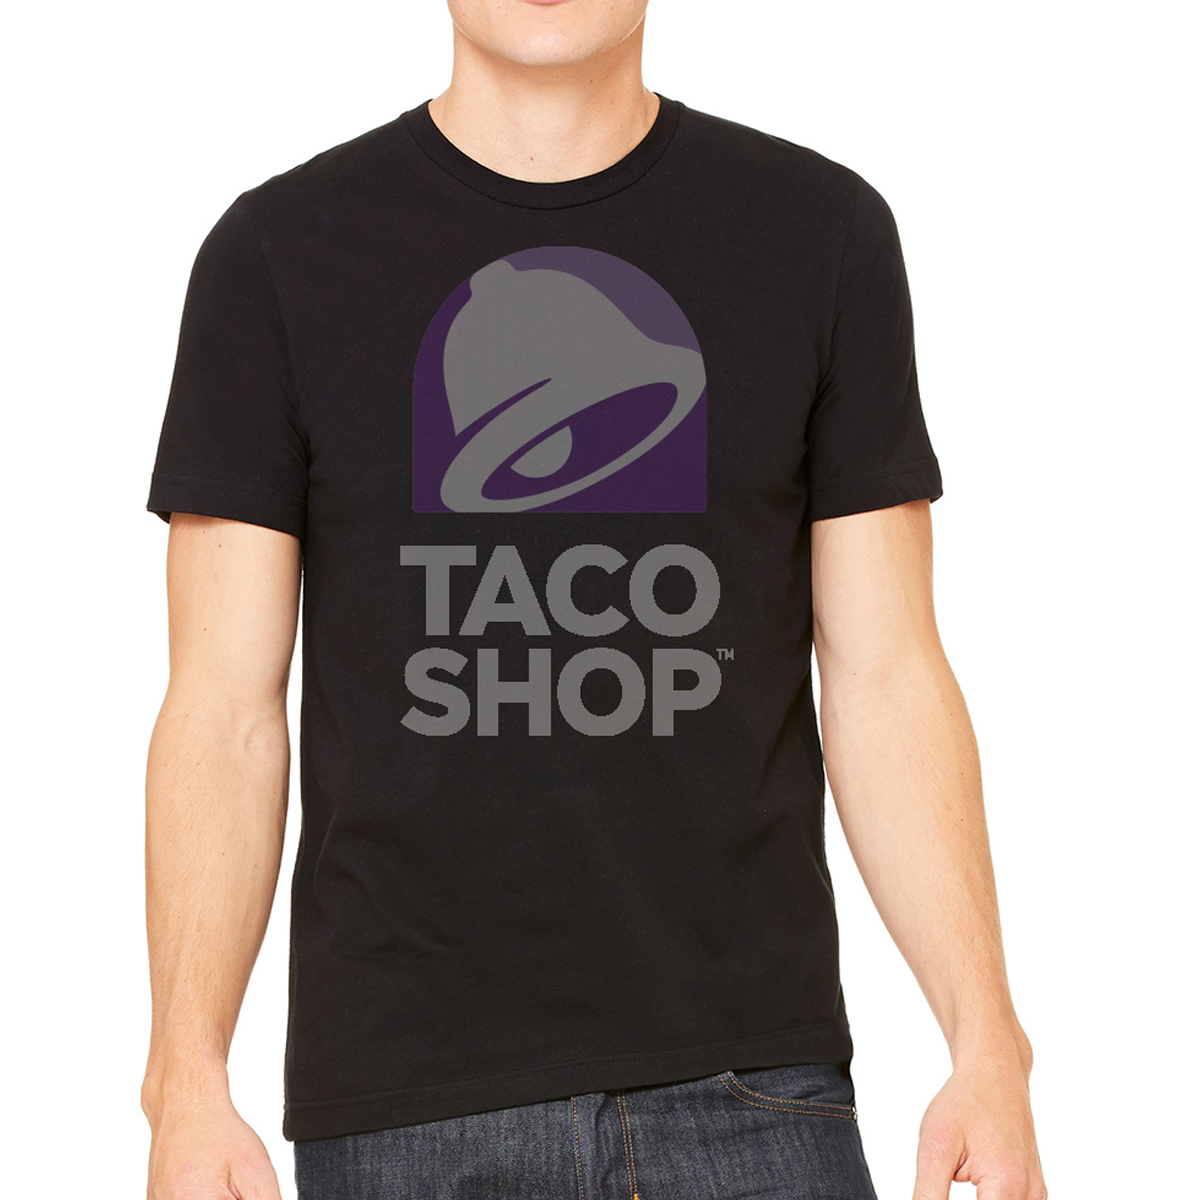 test-product-for-the-taco-shop_image